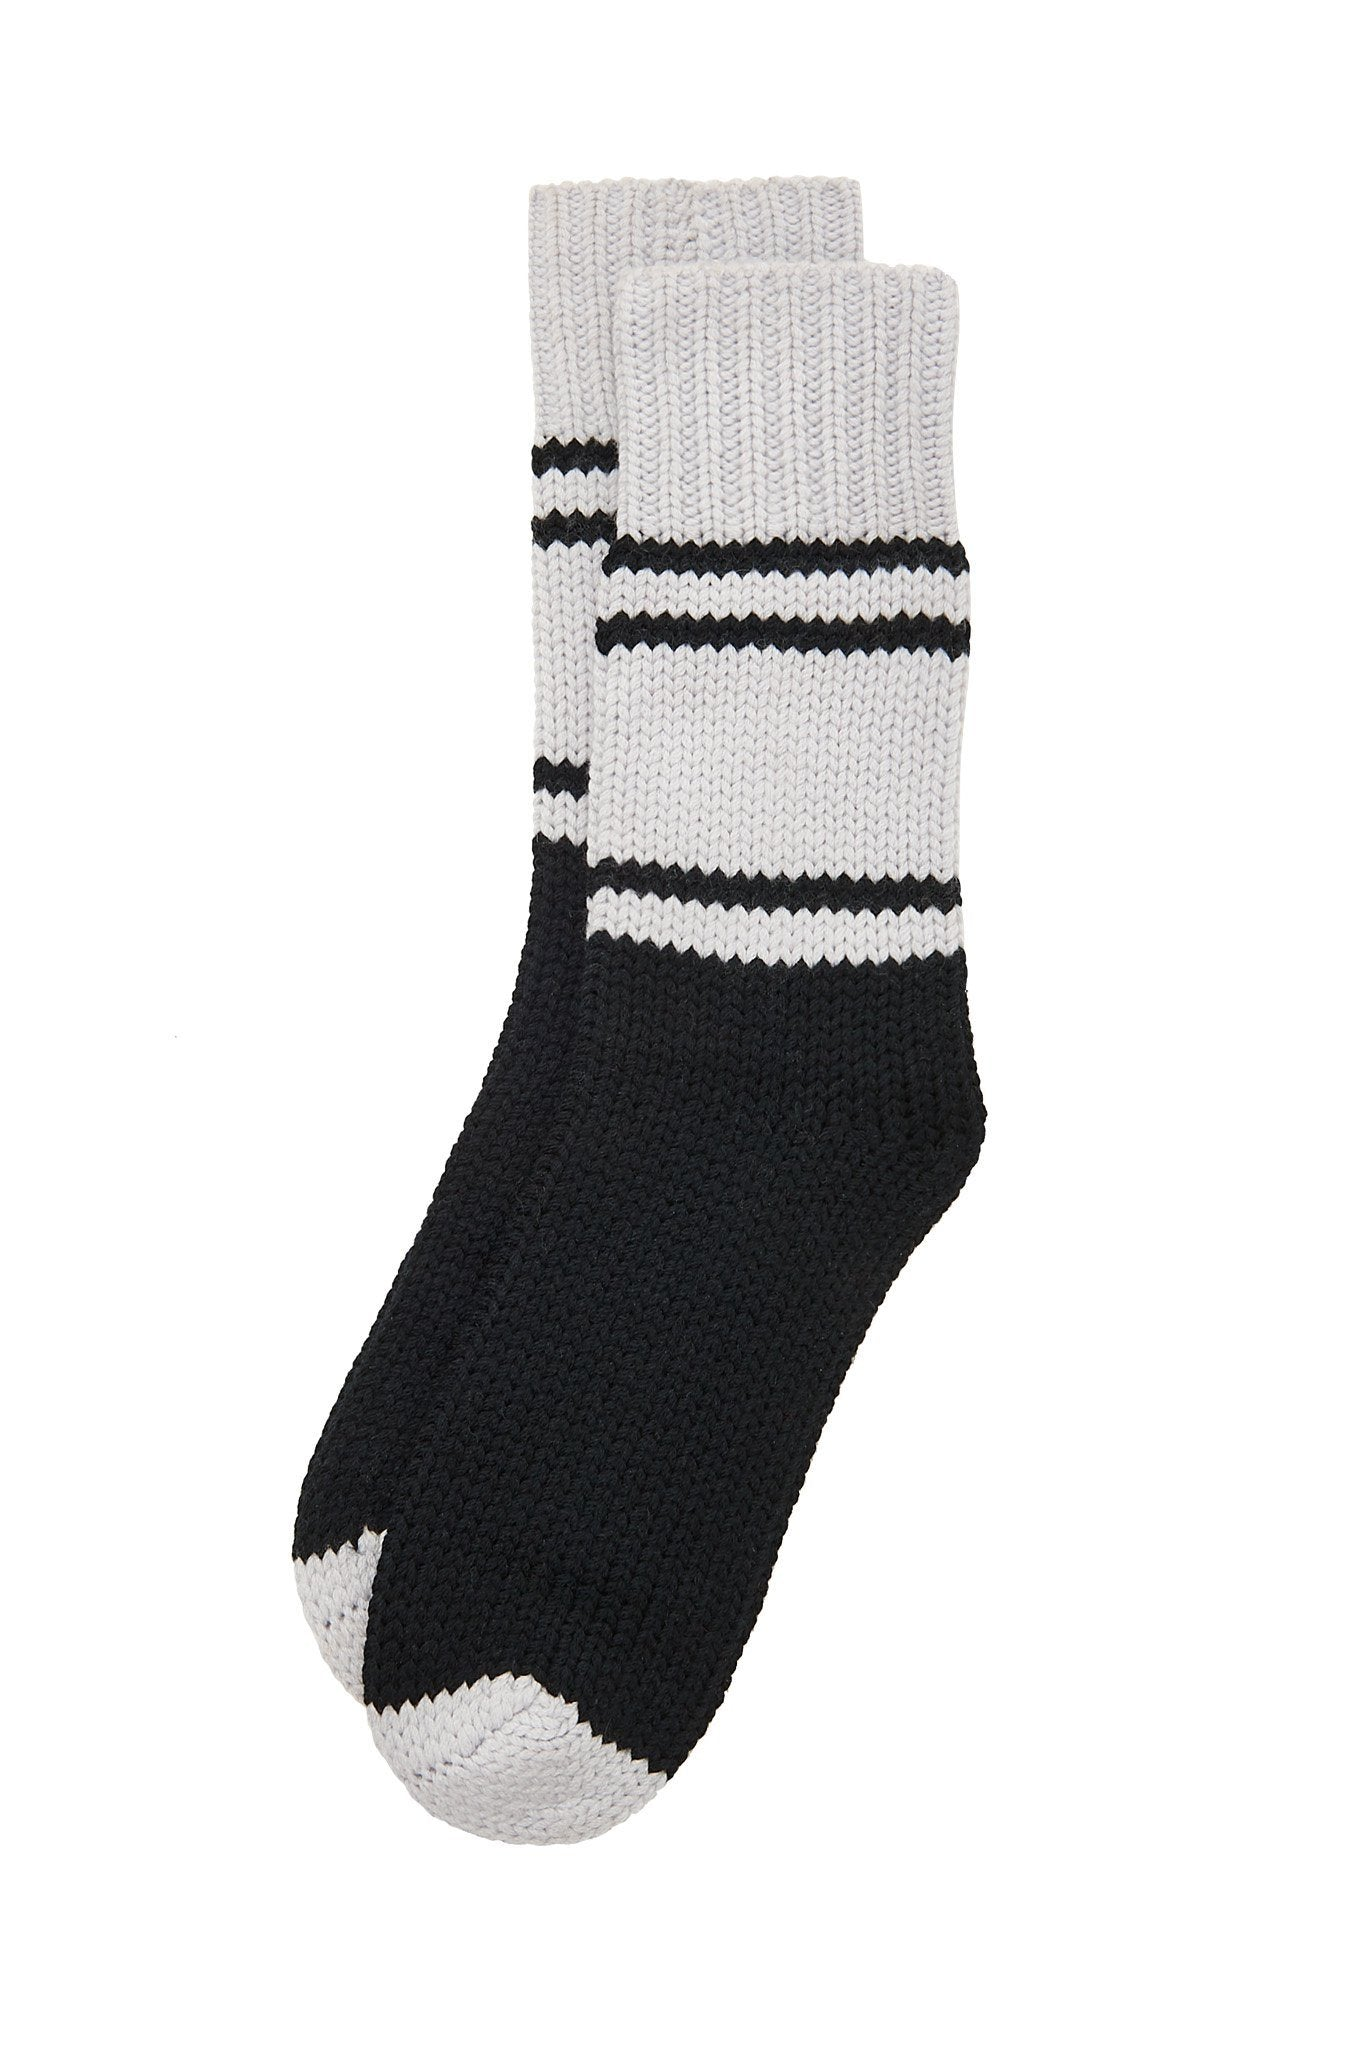 CABIN Merino Wool Socks Ice - Komodo Fashion